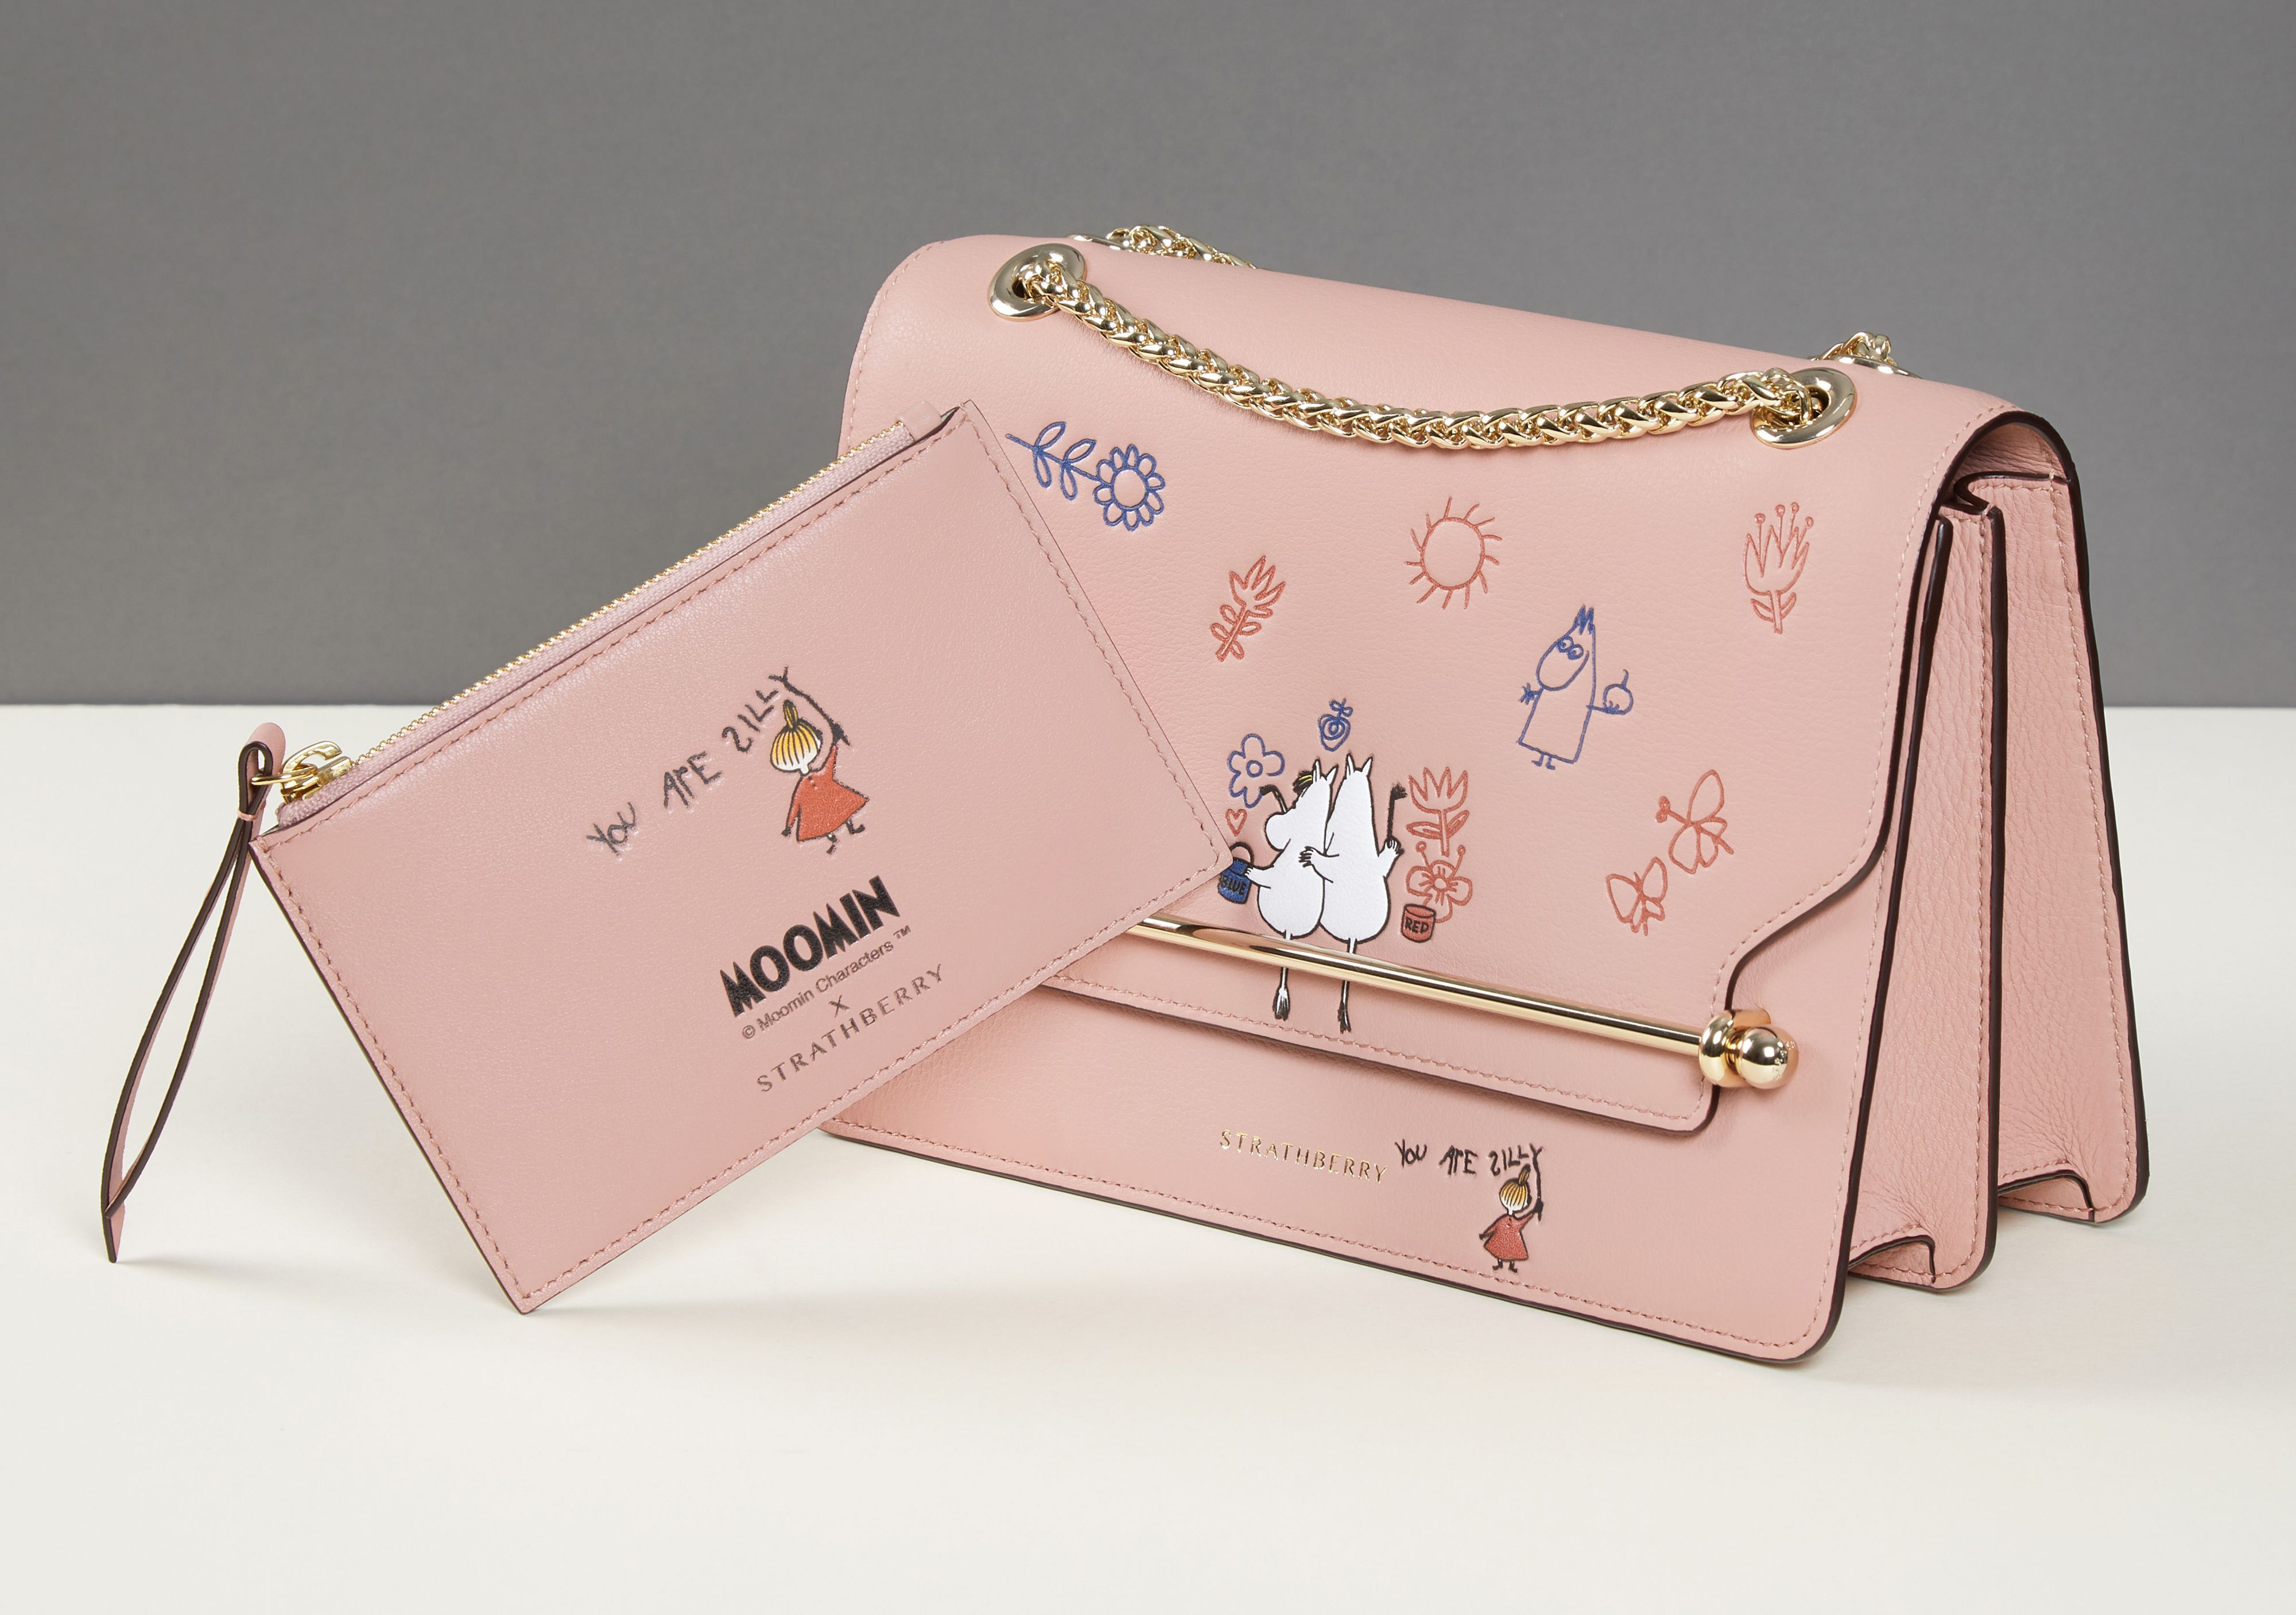 Bag From Strathberry S Moomin Collection